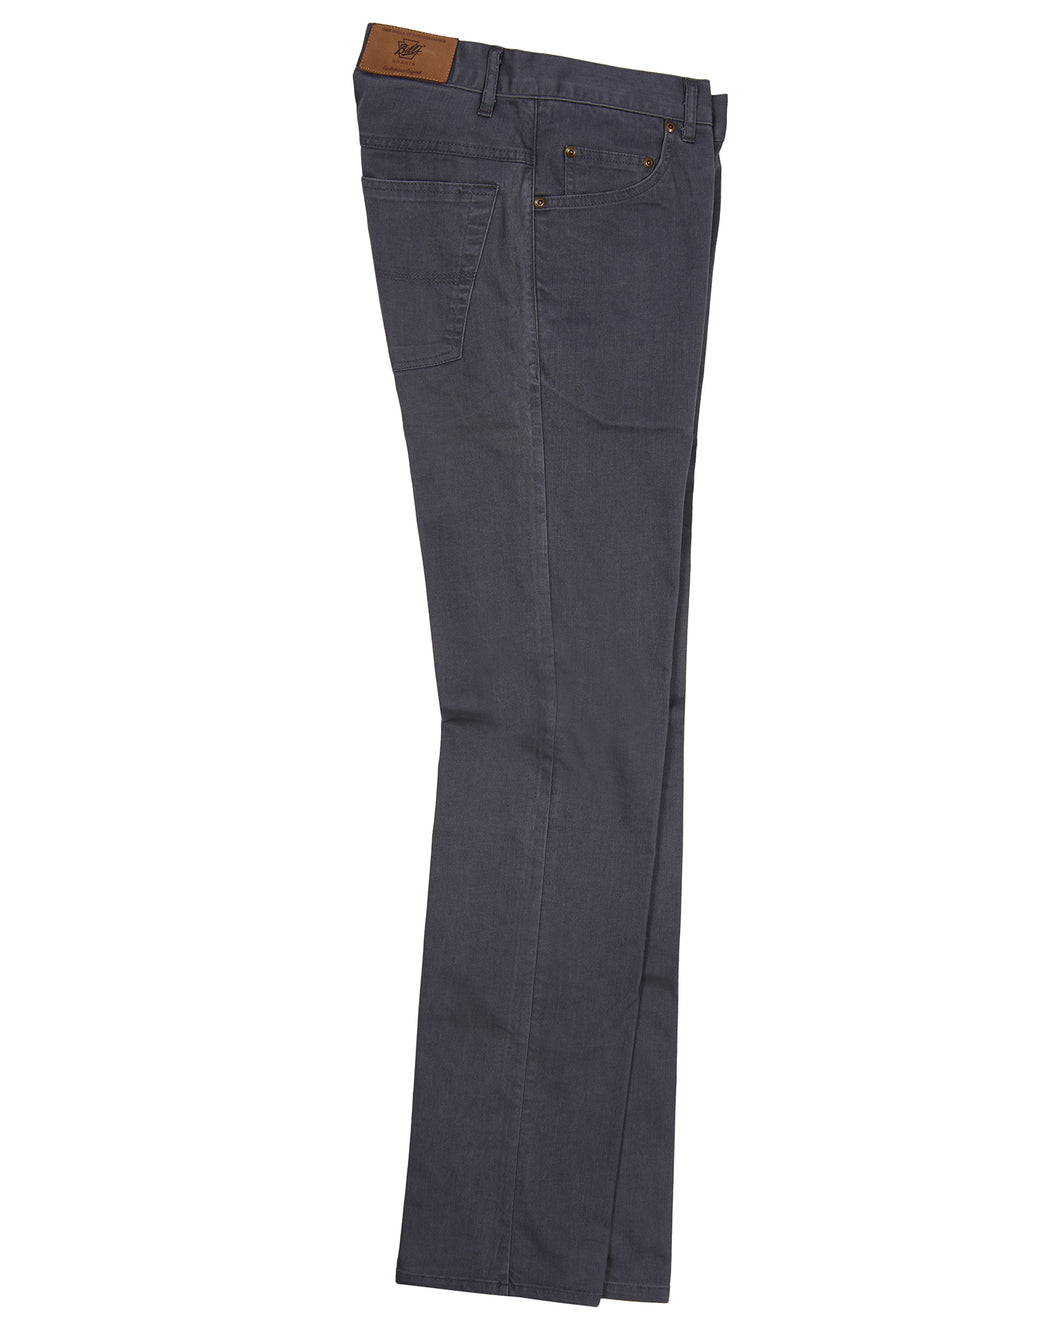 5-pkt - Straight Fit - T400 Stretch Broken Twill